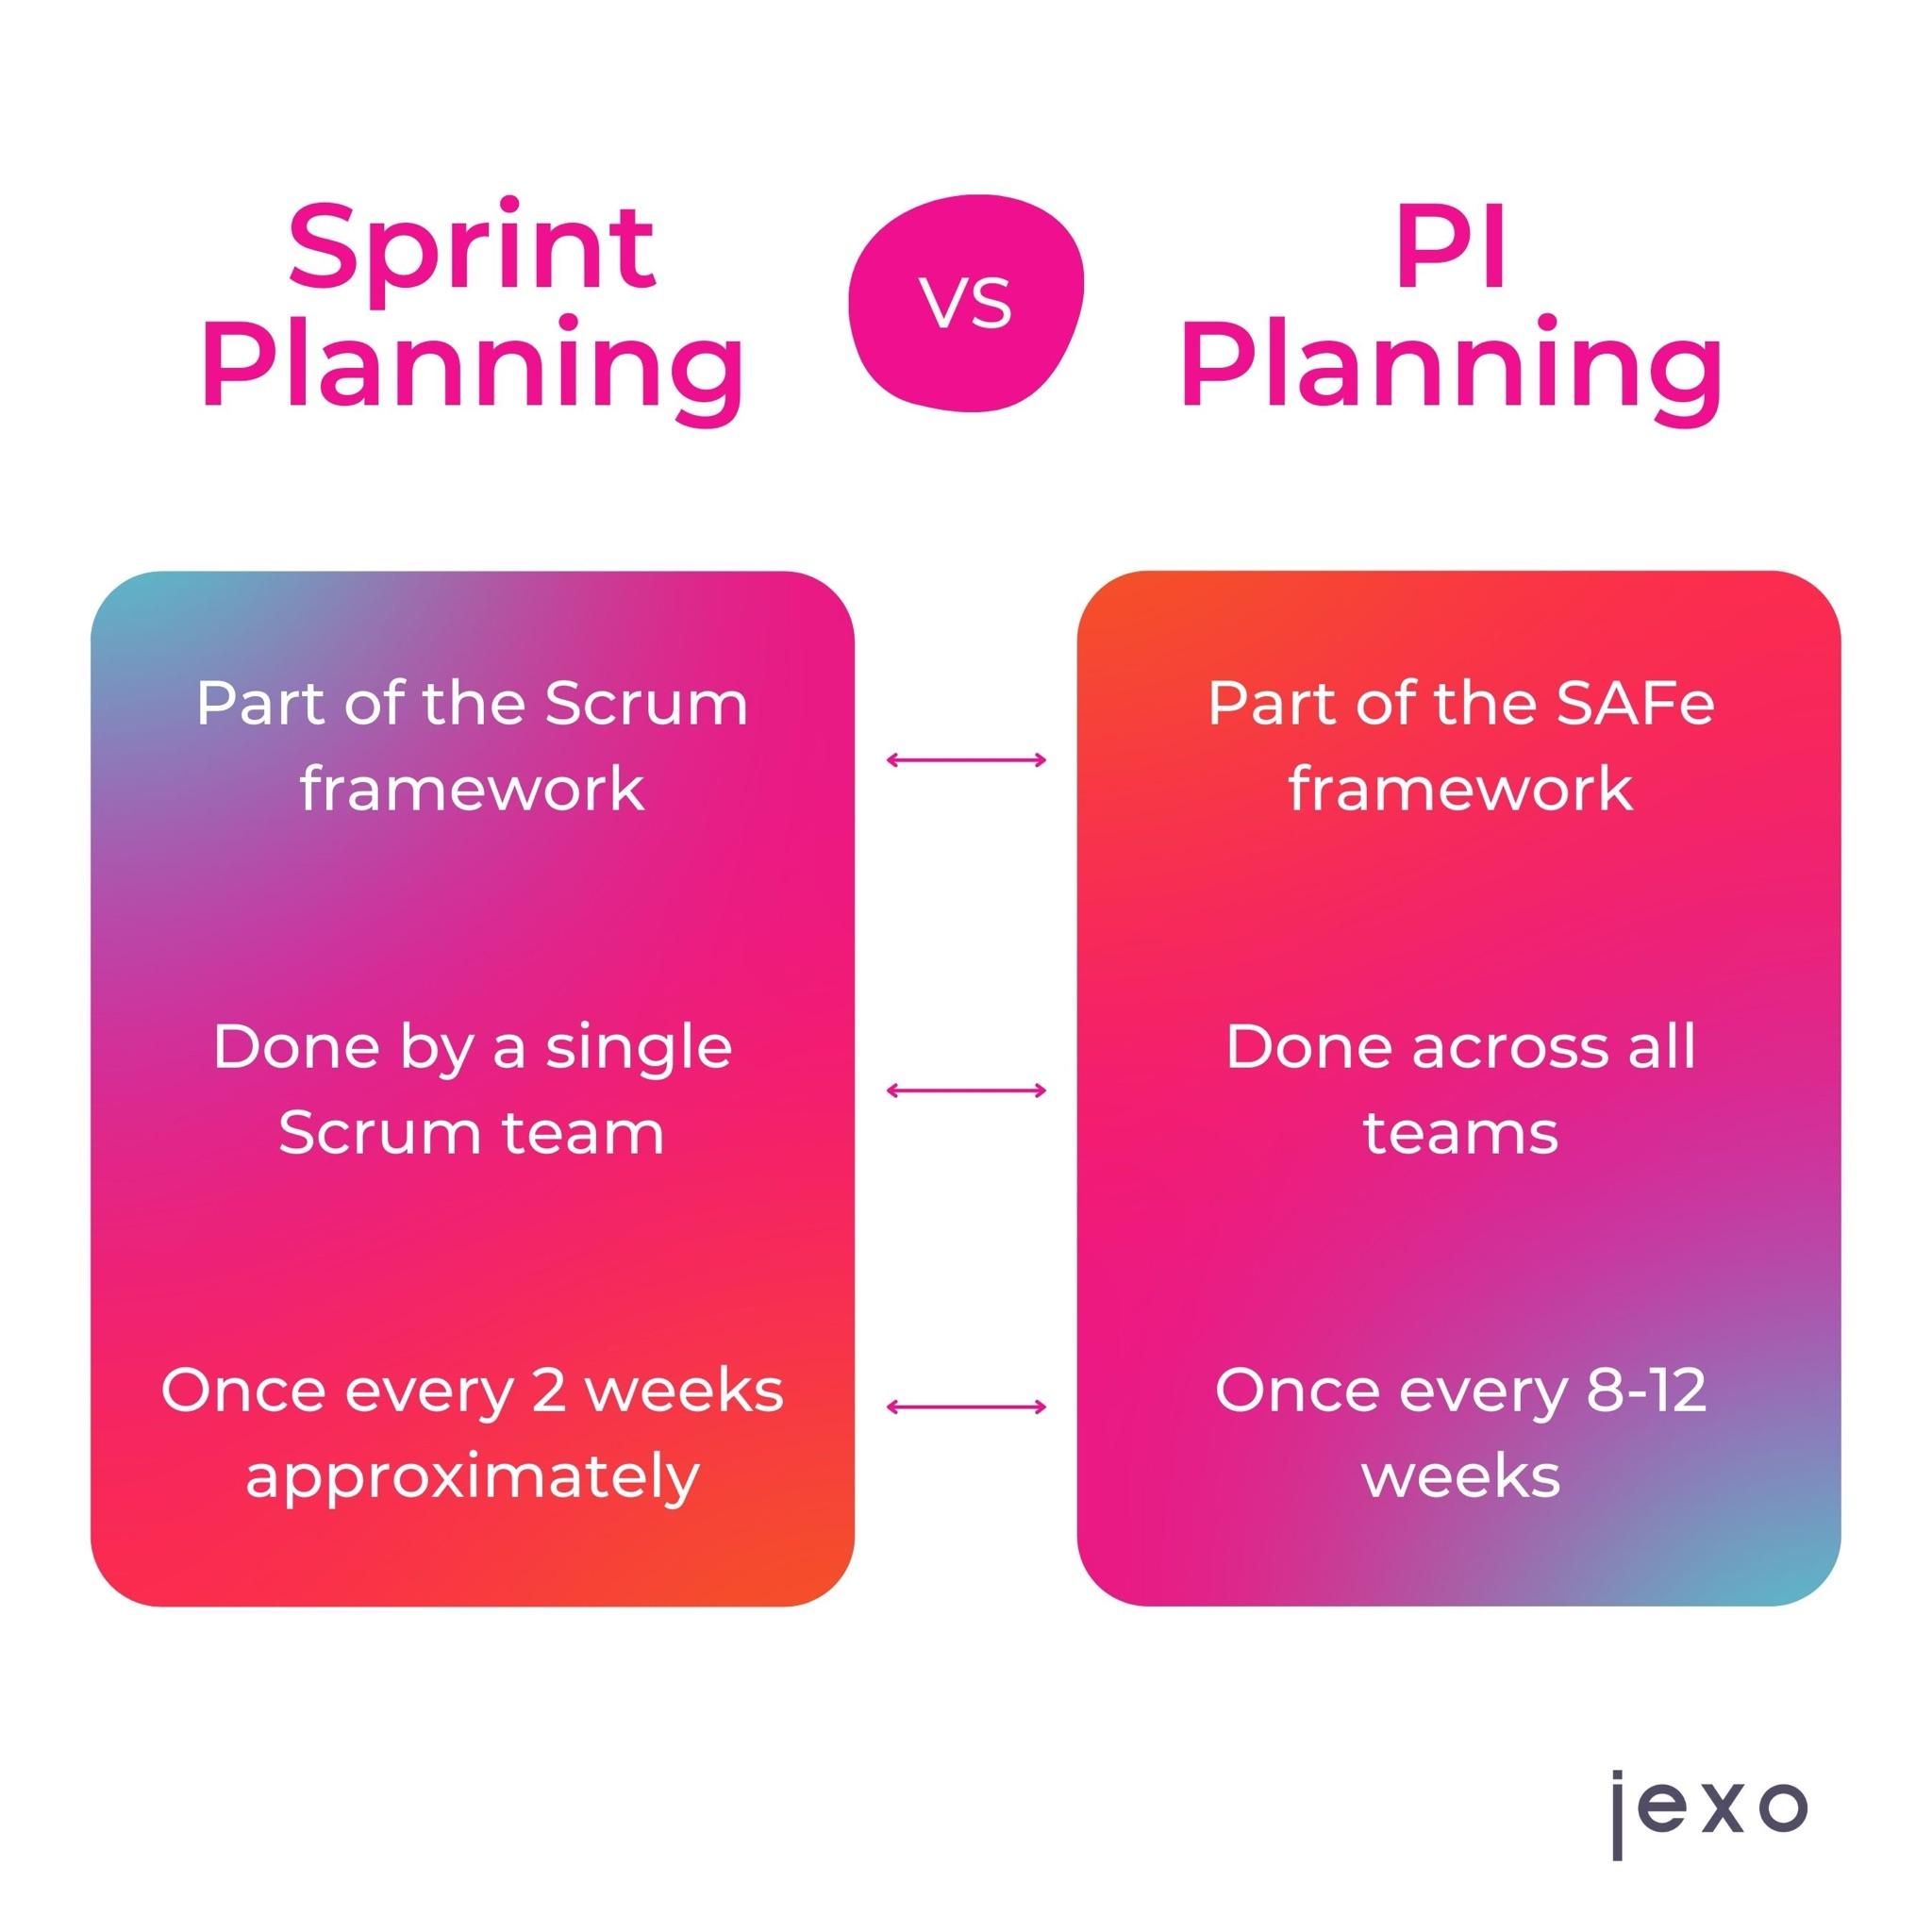 The differences between Sprint planning and PI planning